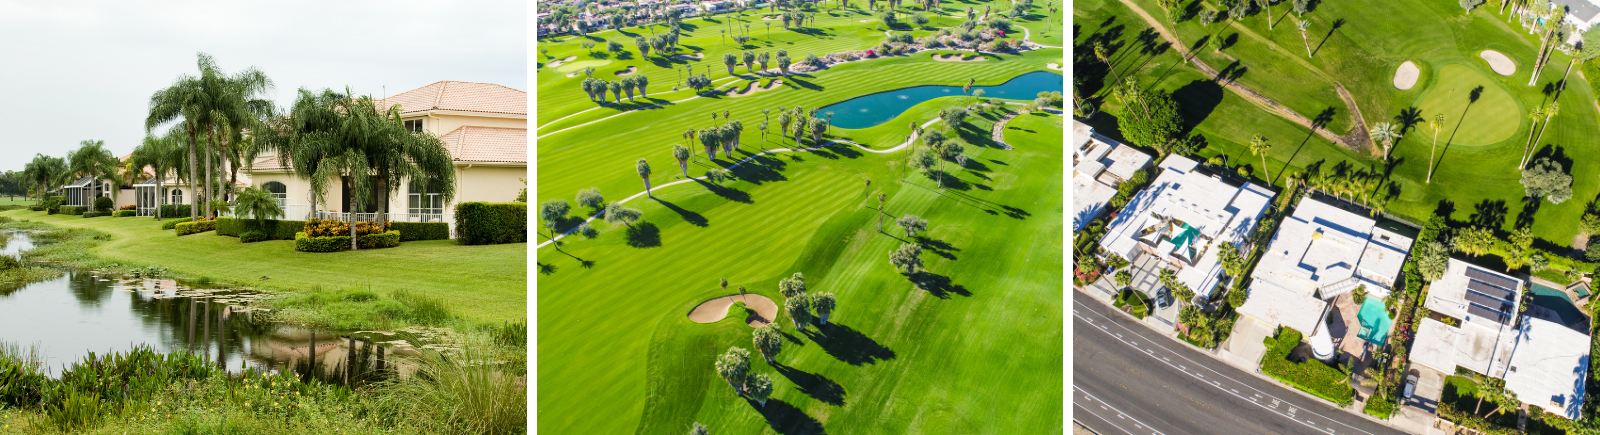 South Florida Golf Course Homes for Sale